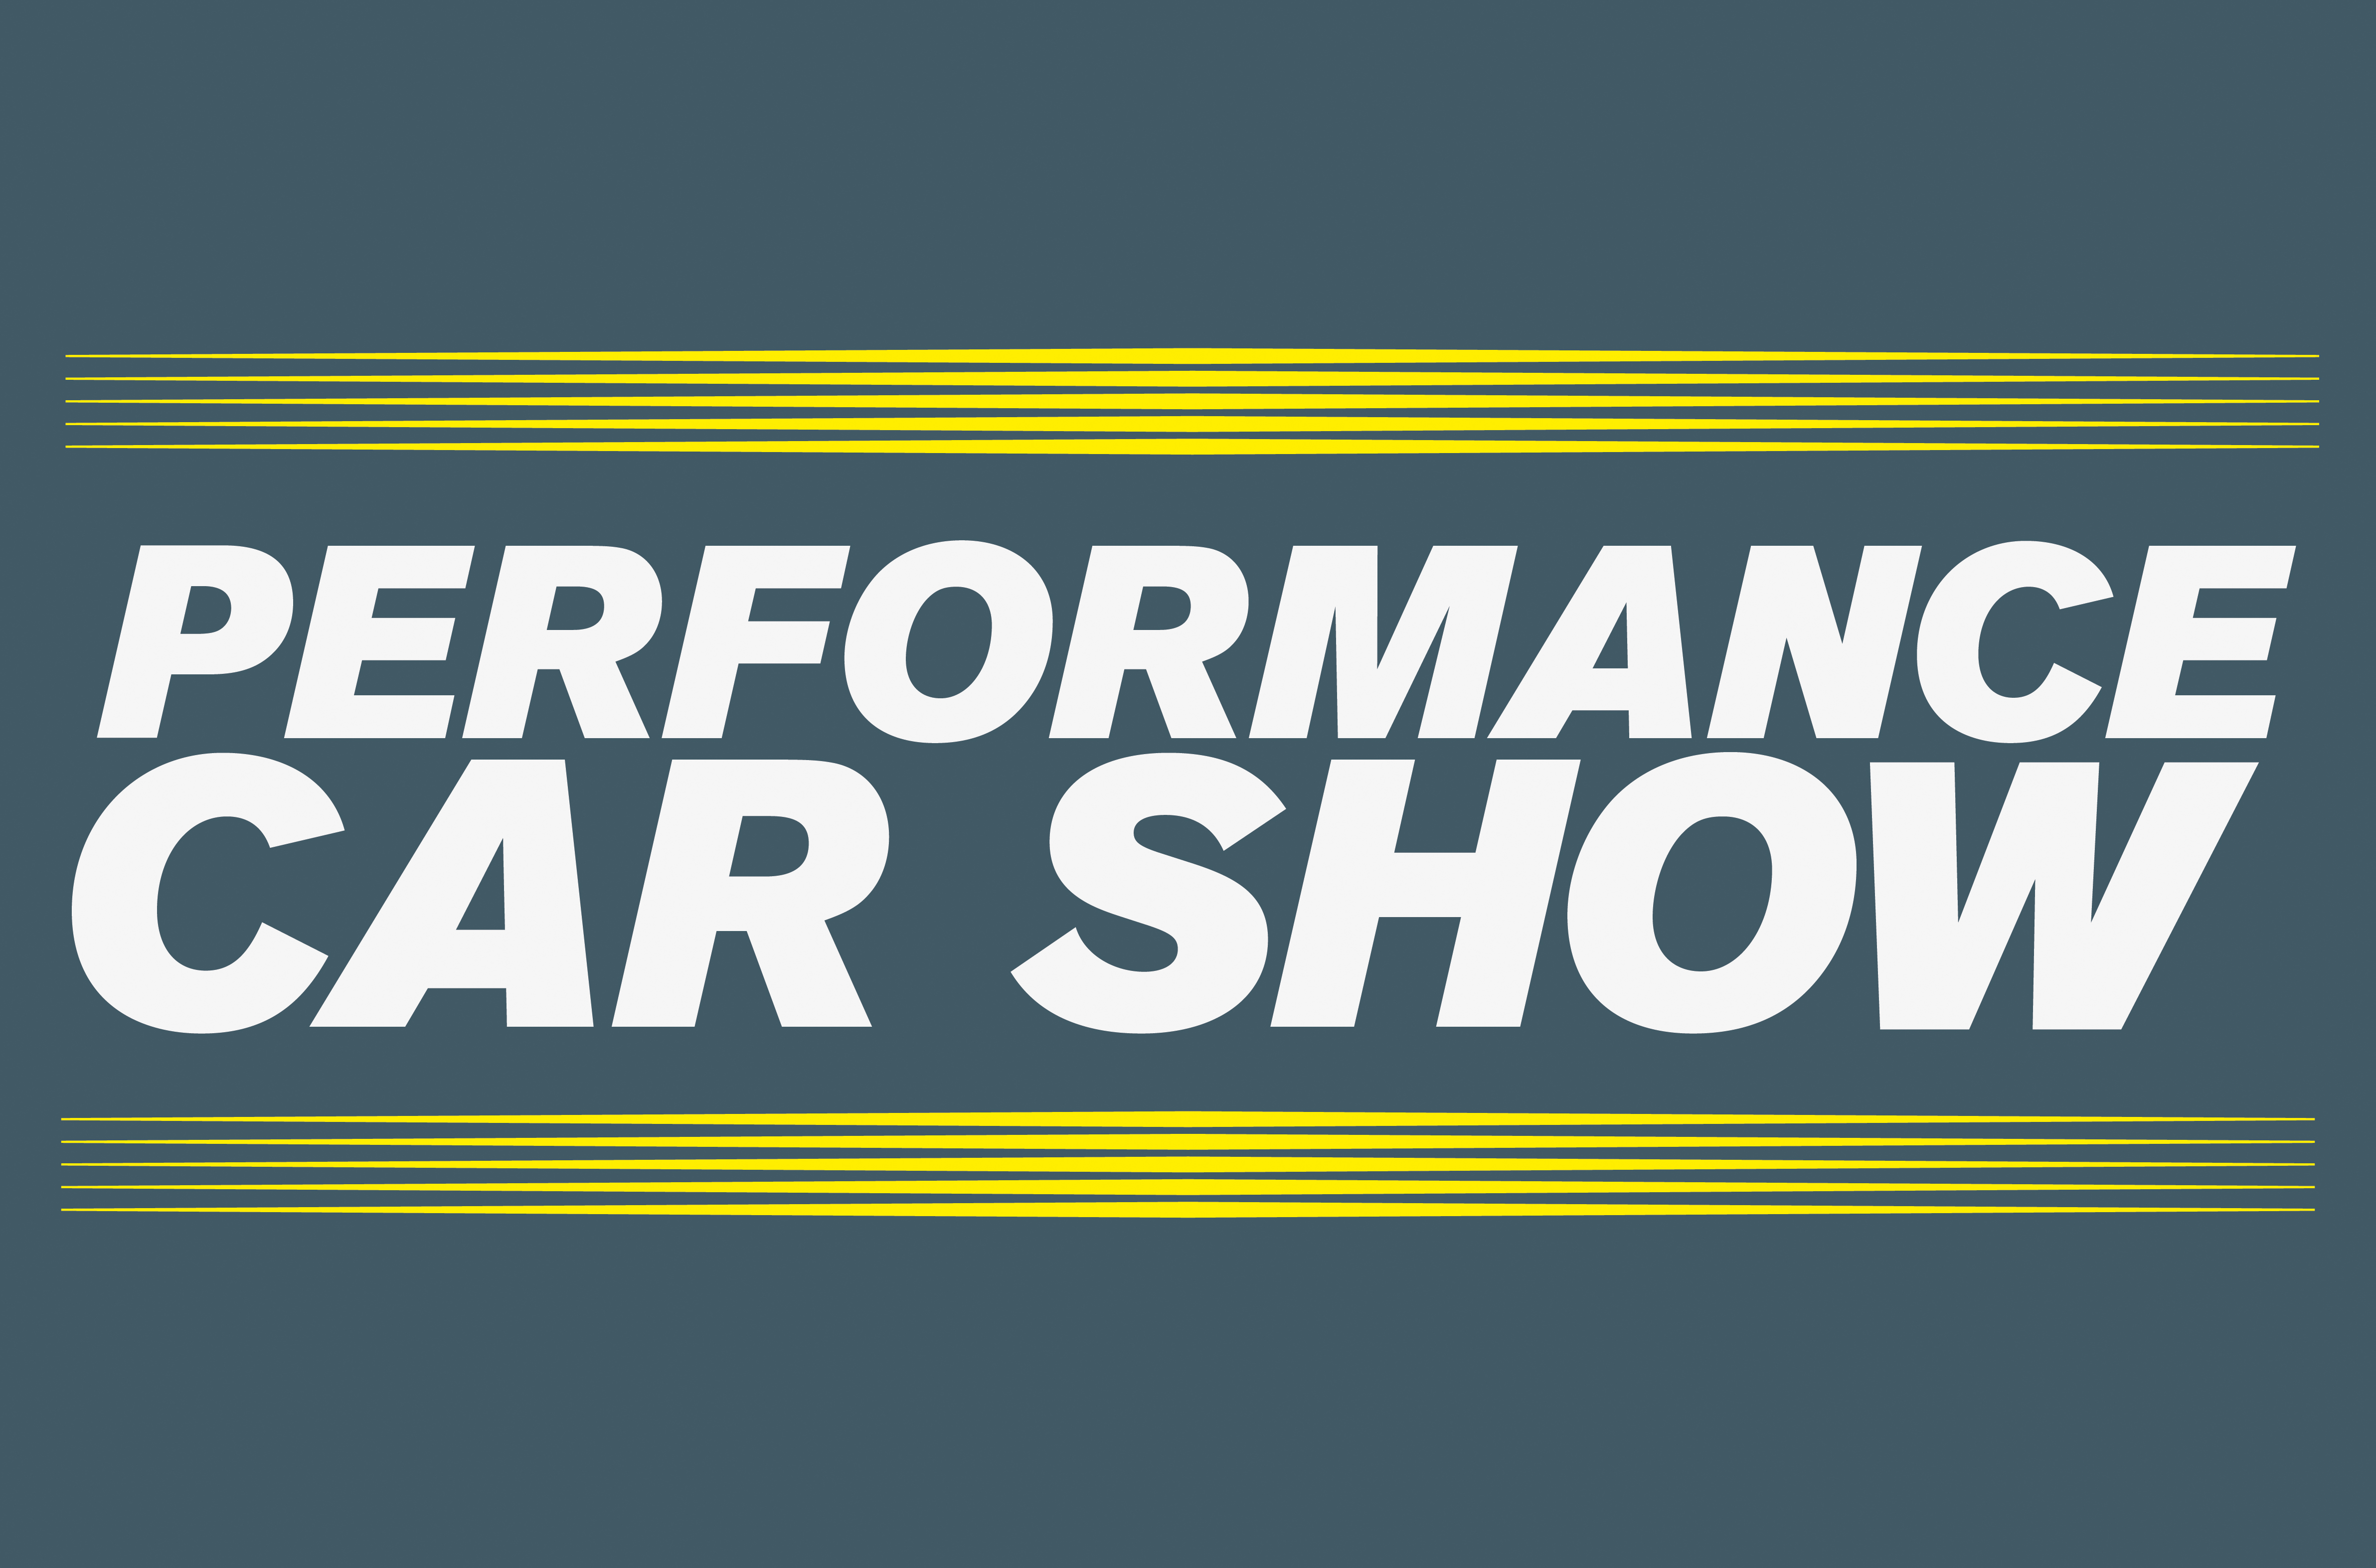 Win A Pair Of Tickets To The Performance Car Show My Car Heaven - How much are the tickets for the car show